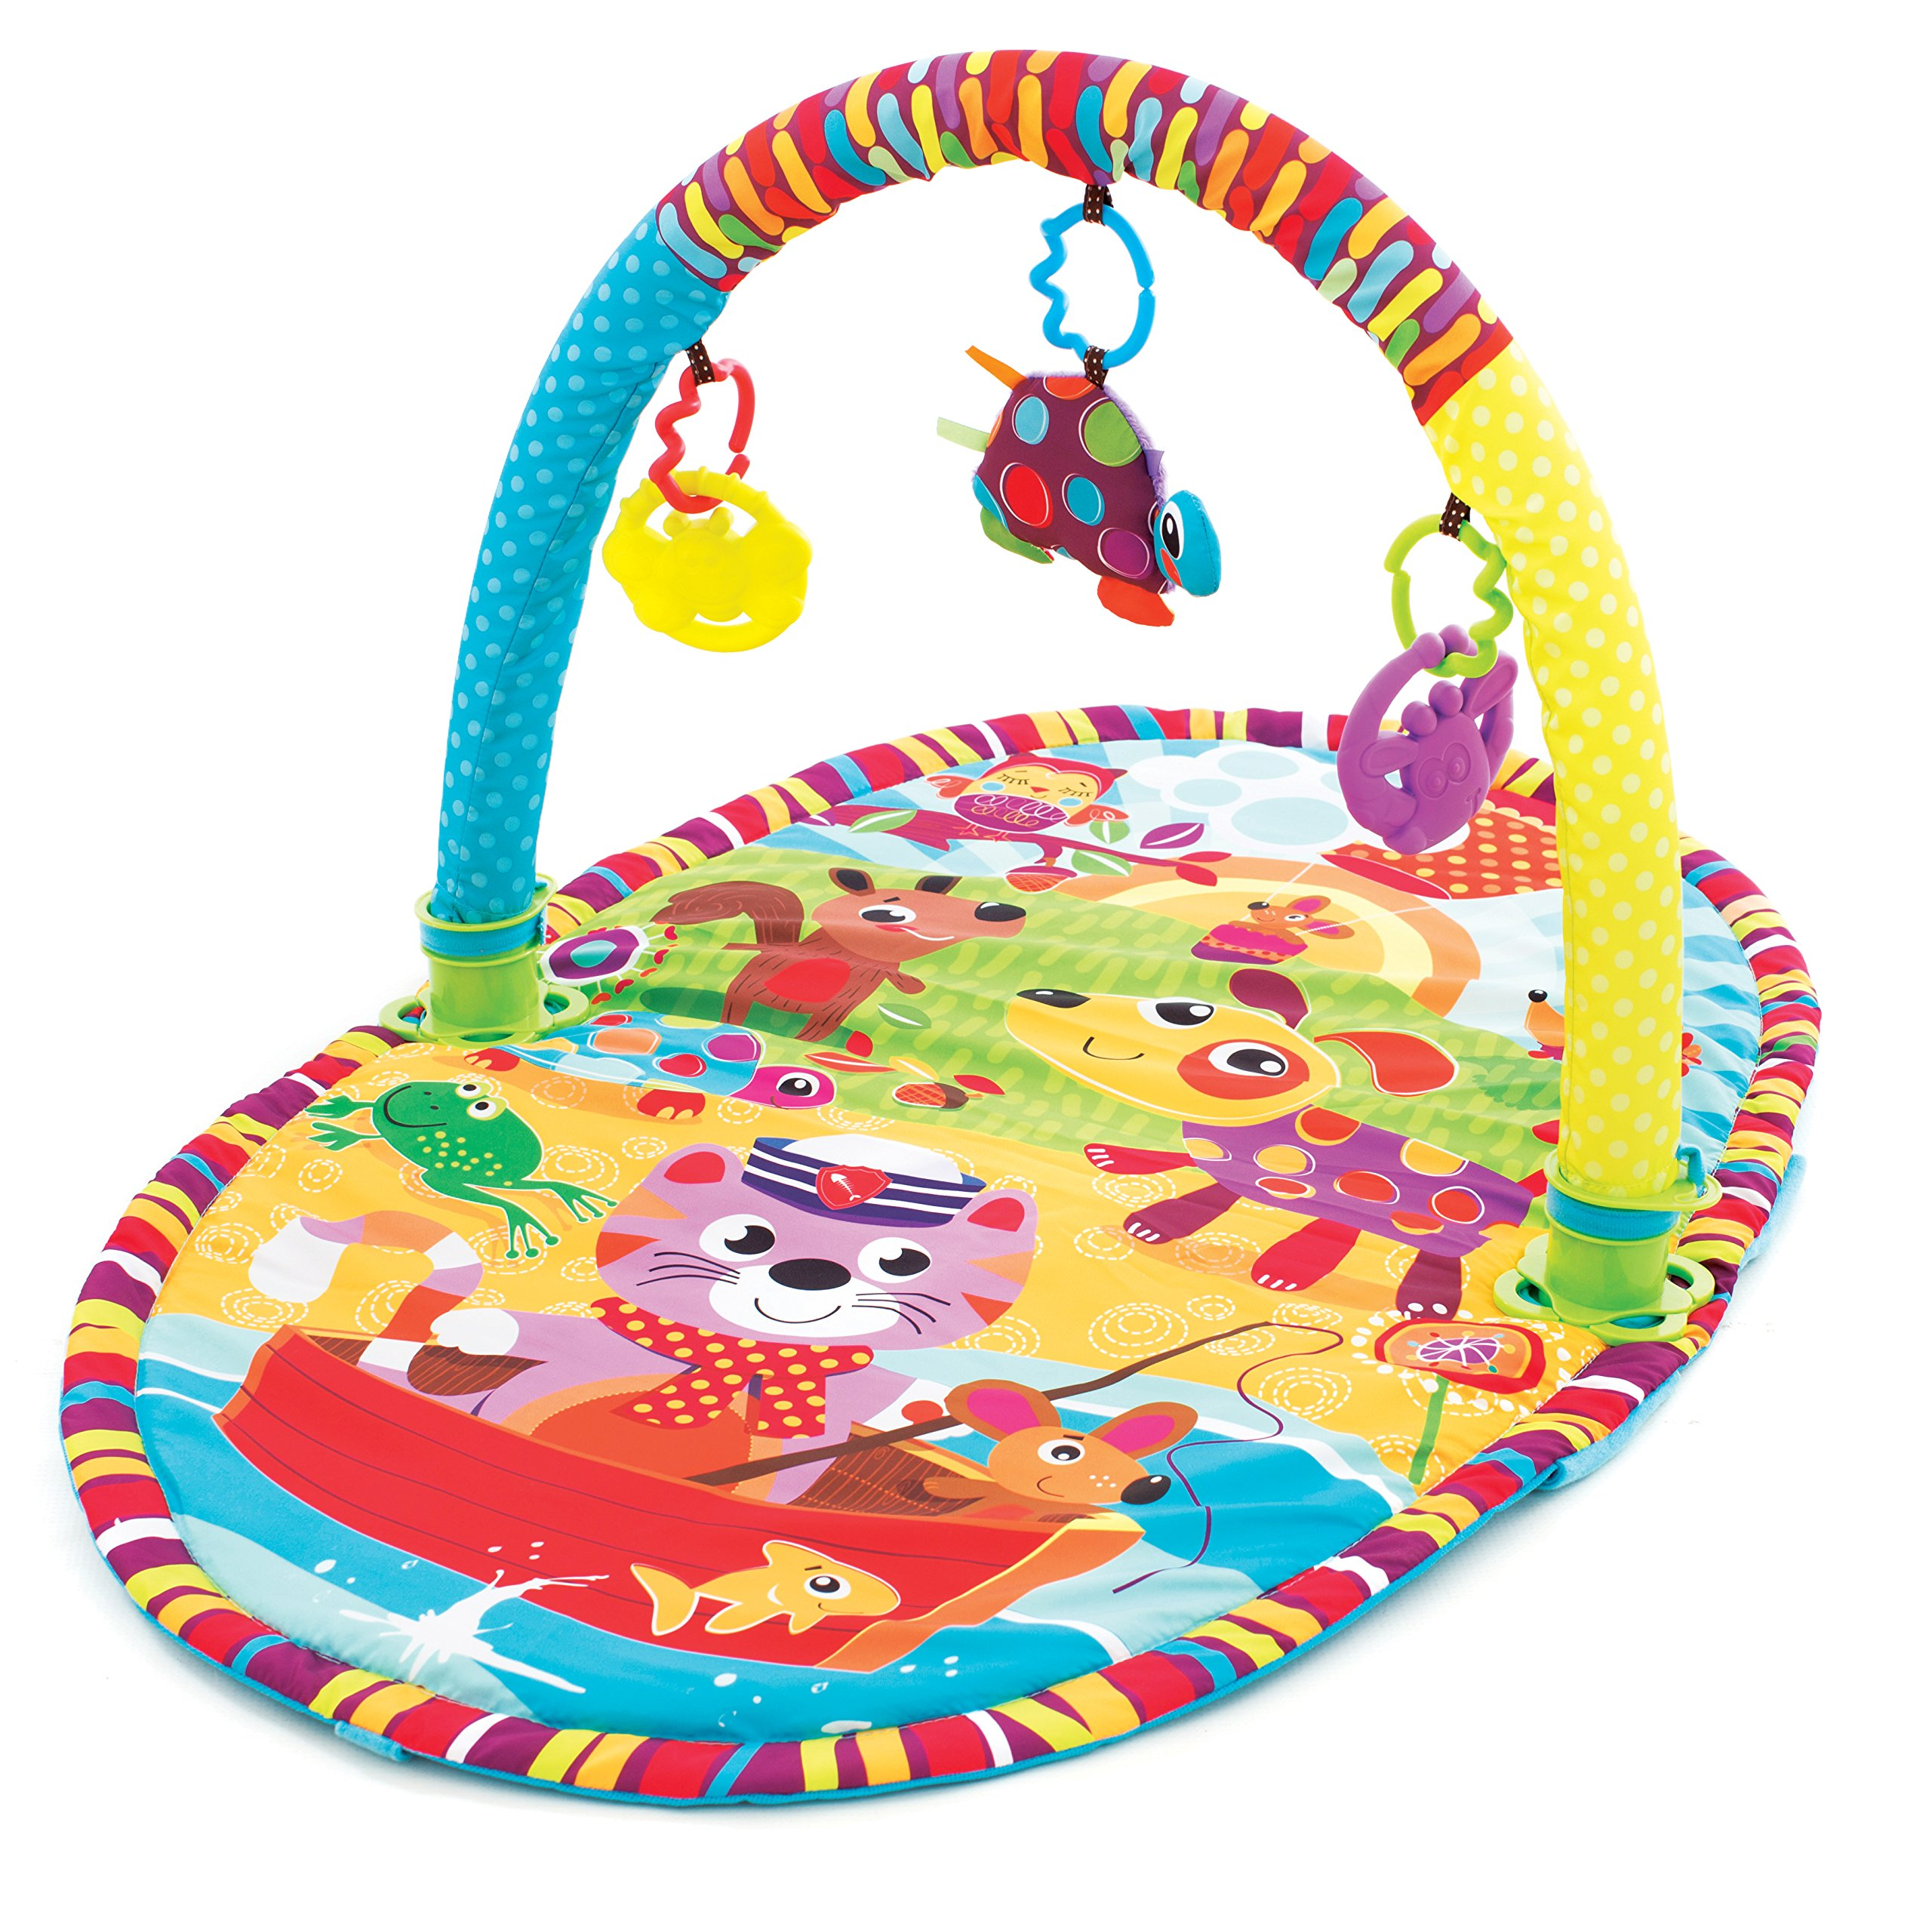 Playgro Play in the Park Activity Gym for baby infant toddler children 0184213, Playgro is Encouraging Imagination with STEM/STEM for a bright future - Great start for a world of learning